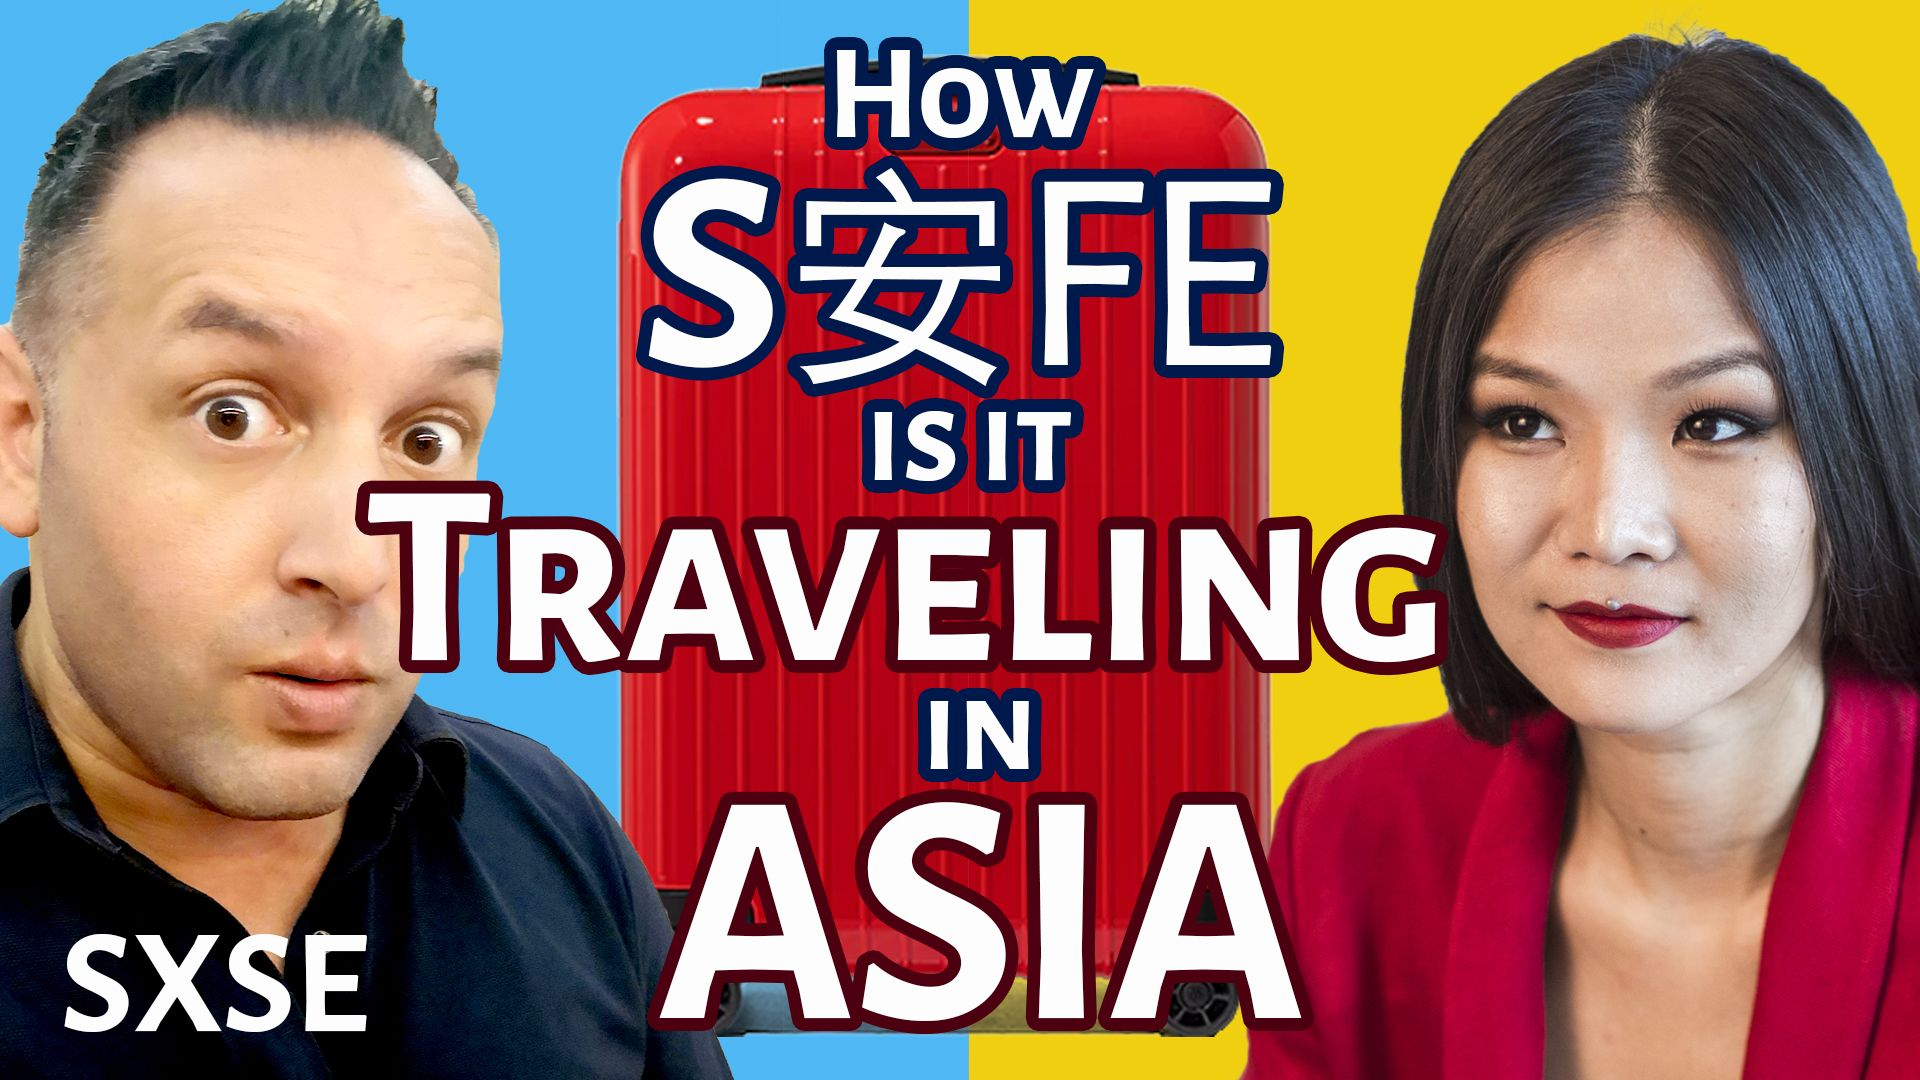 How Safe is it to Travel in Asia